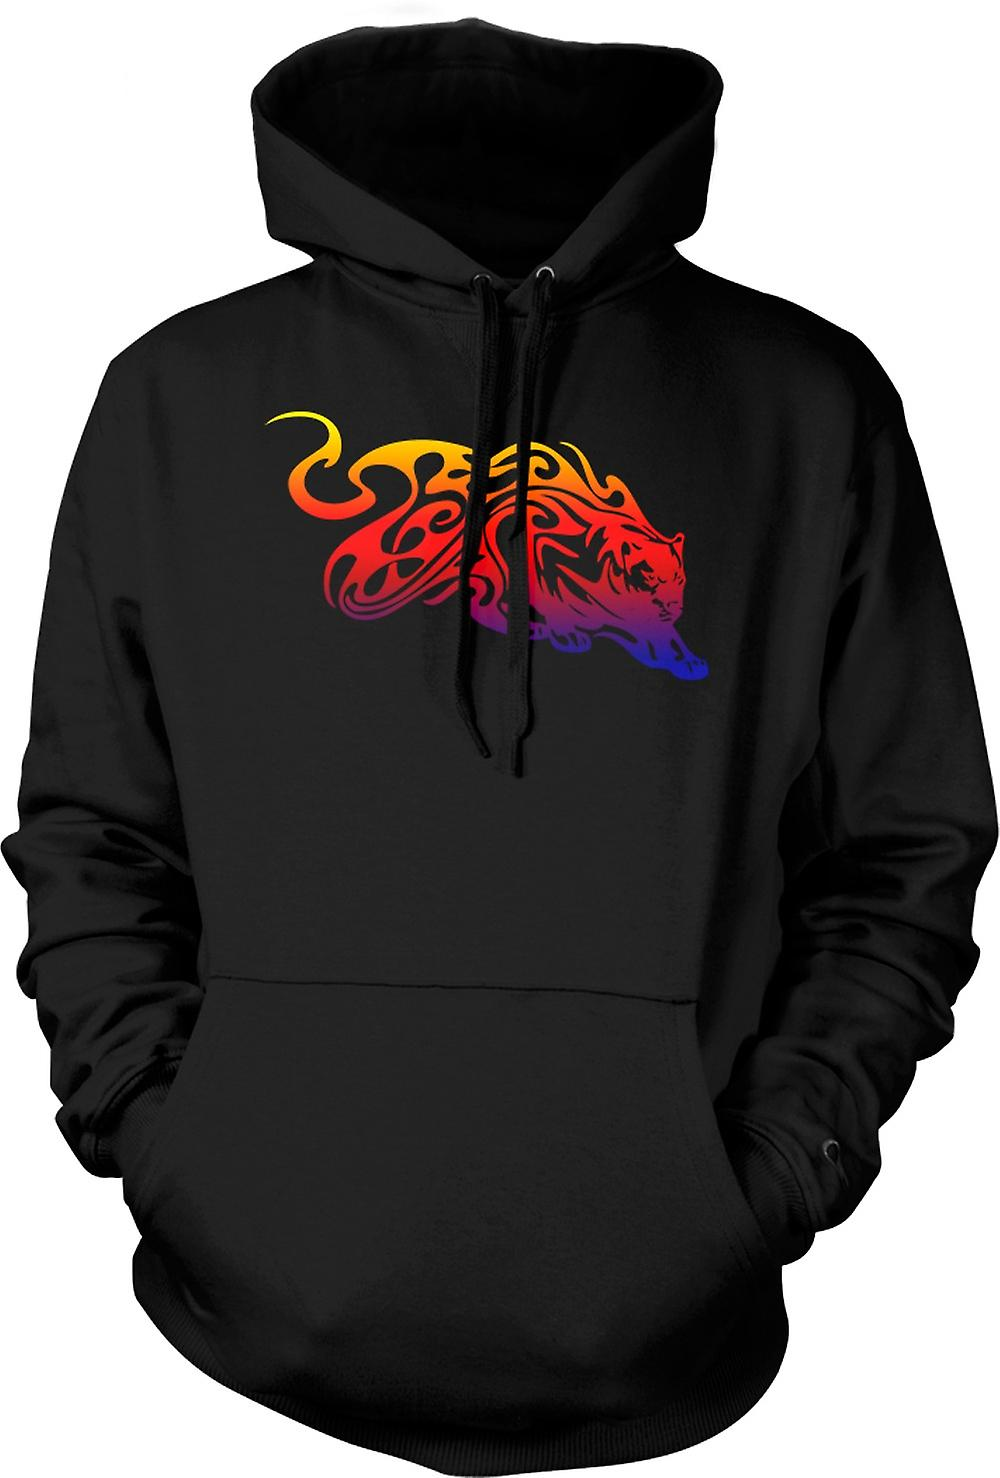 Mens Hoodie - Tribal Tiger med Flames Design